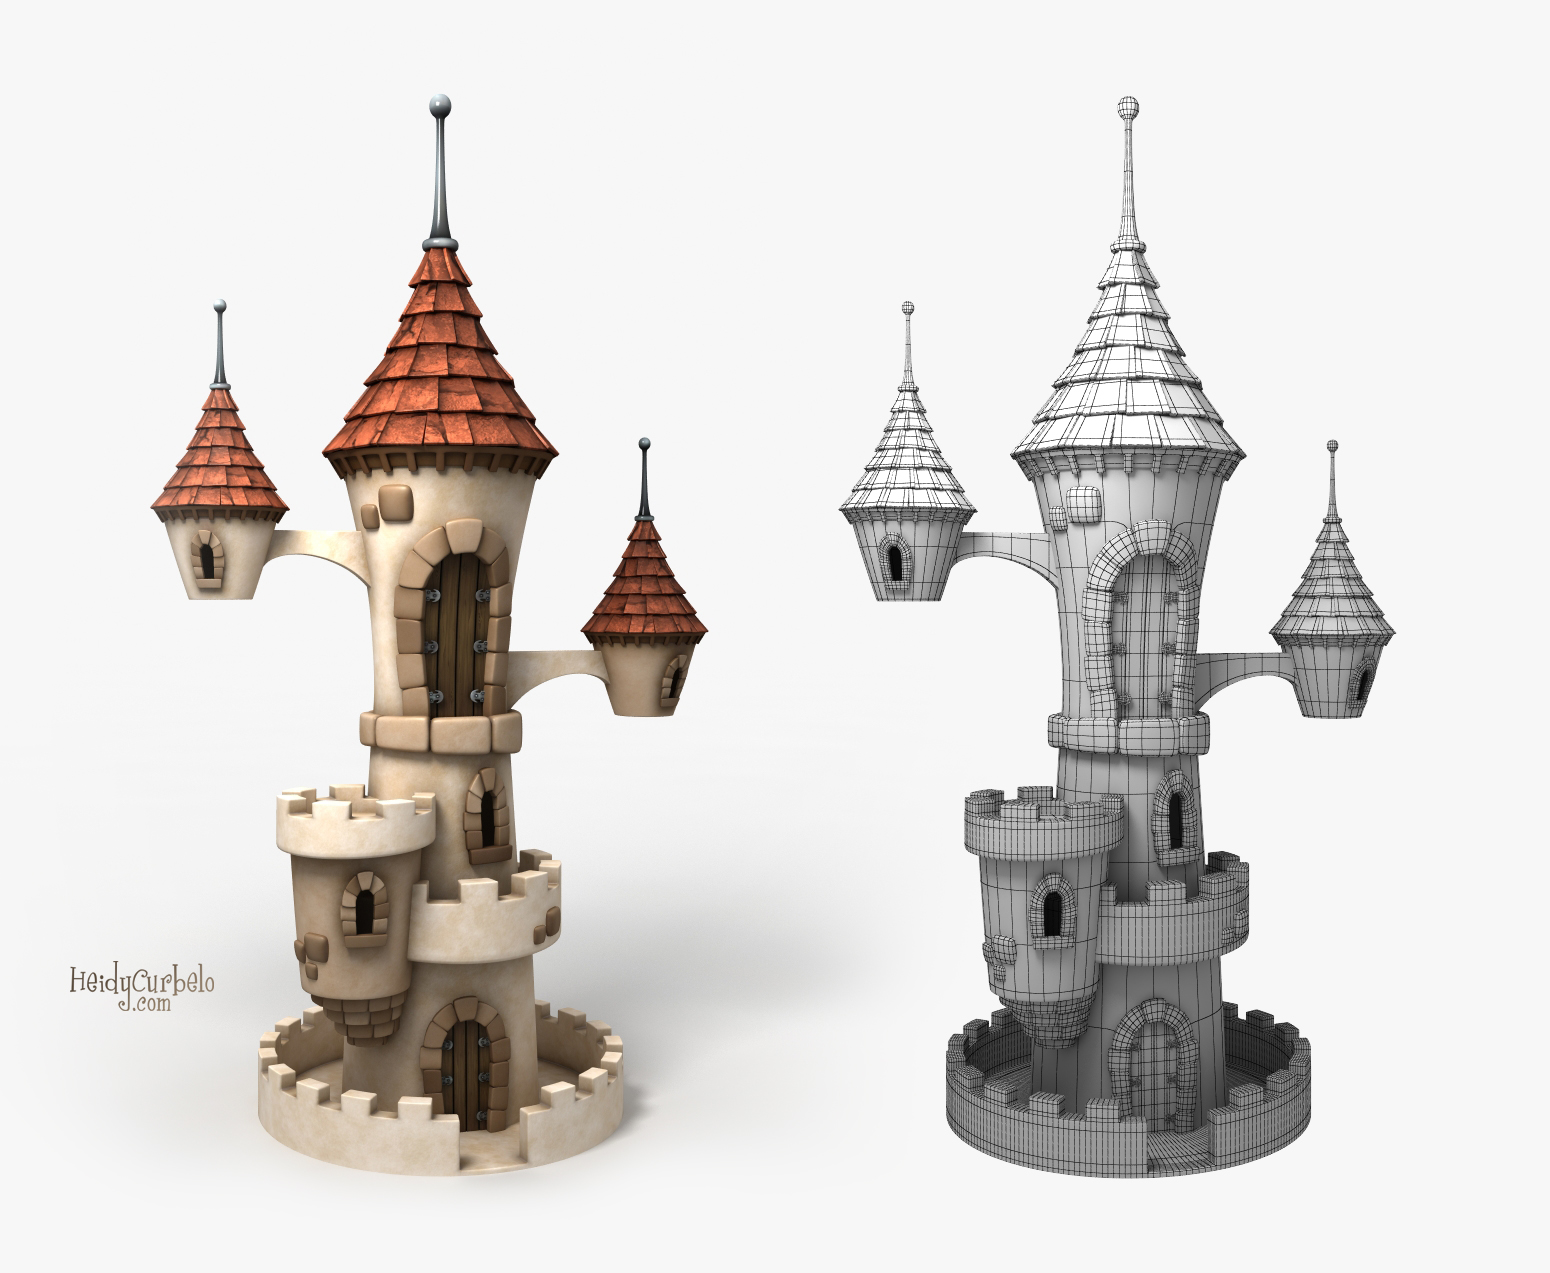 Cartoon Castle for Pinterest